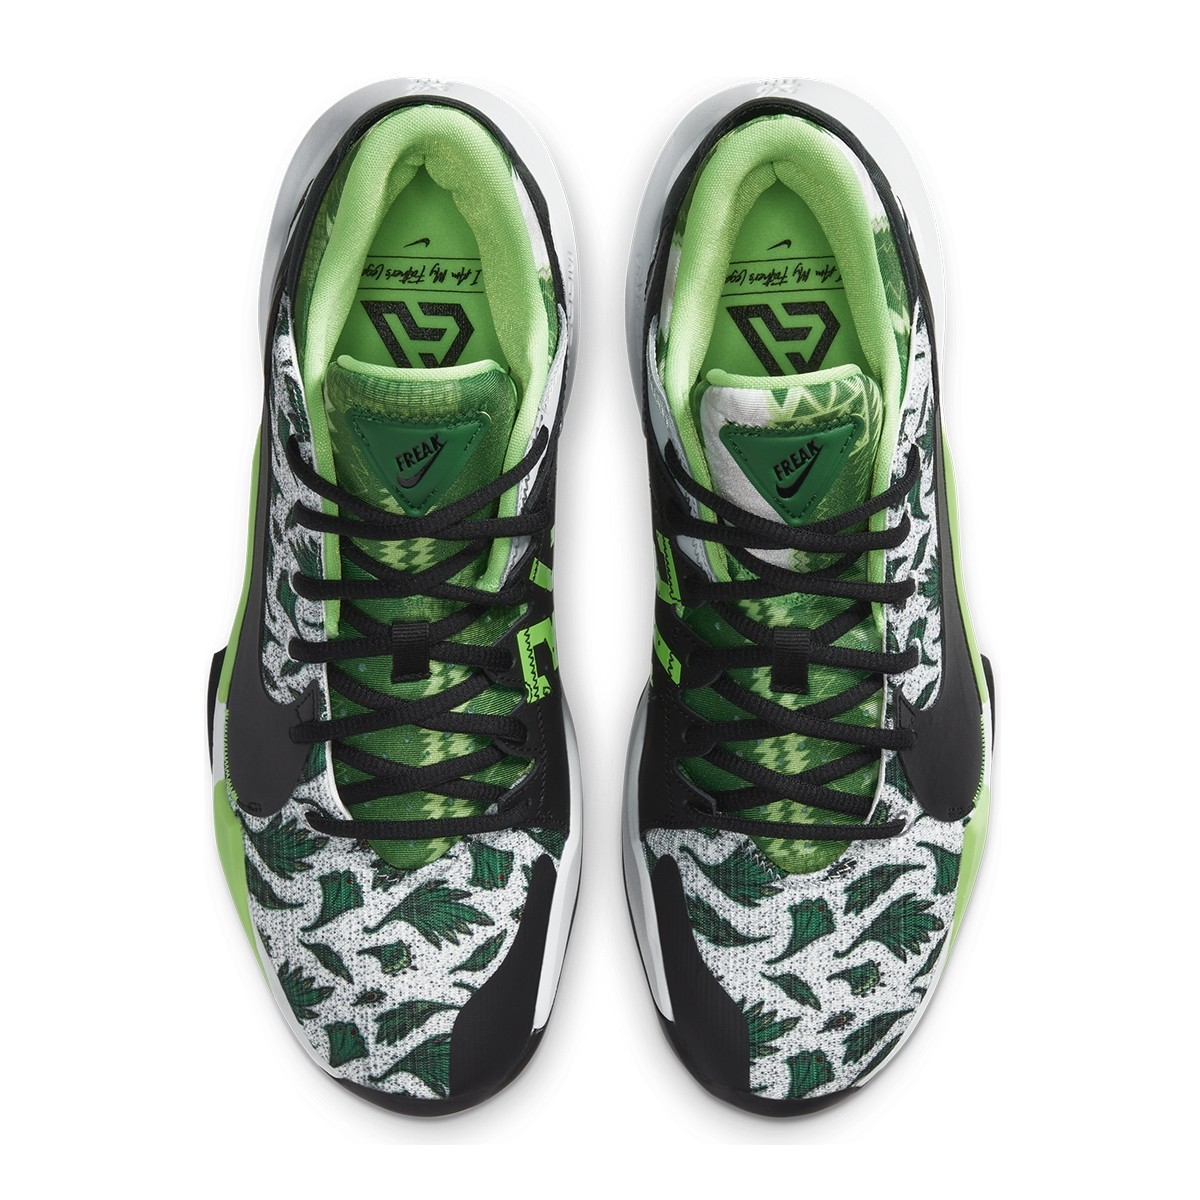 Nike Zoom Freak 2 'Naija'-DA0907-002